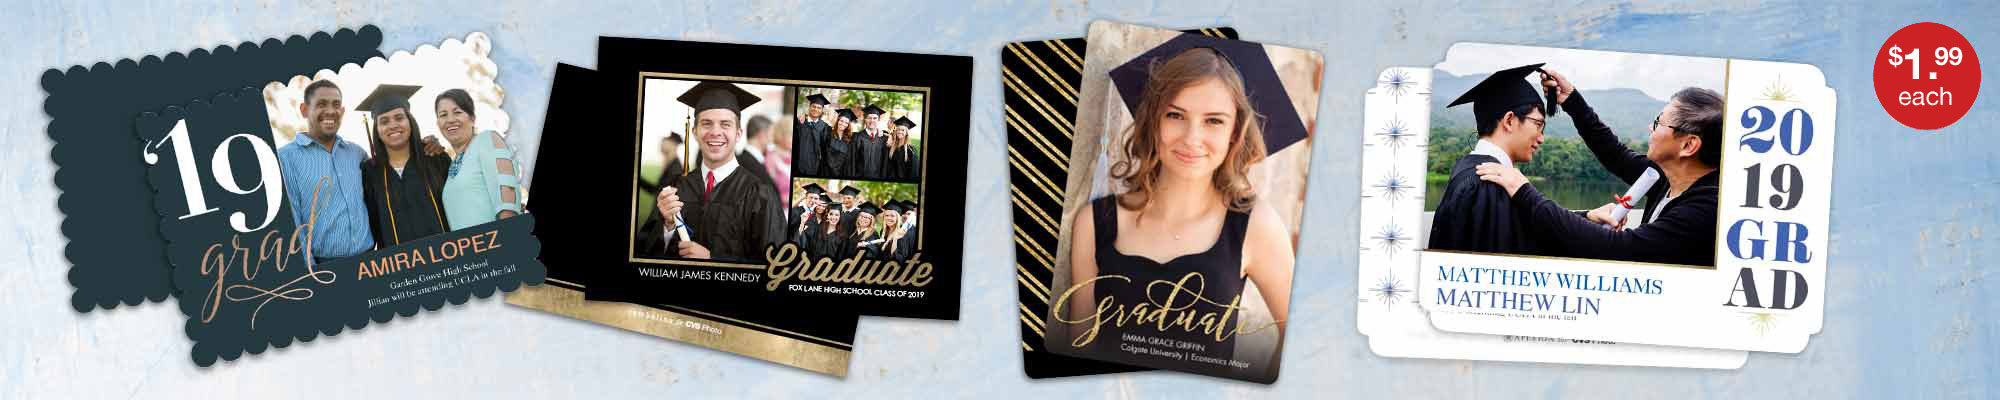 5x7 Premium Cards - The Perfect Graduation Announcement!